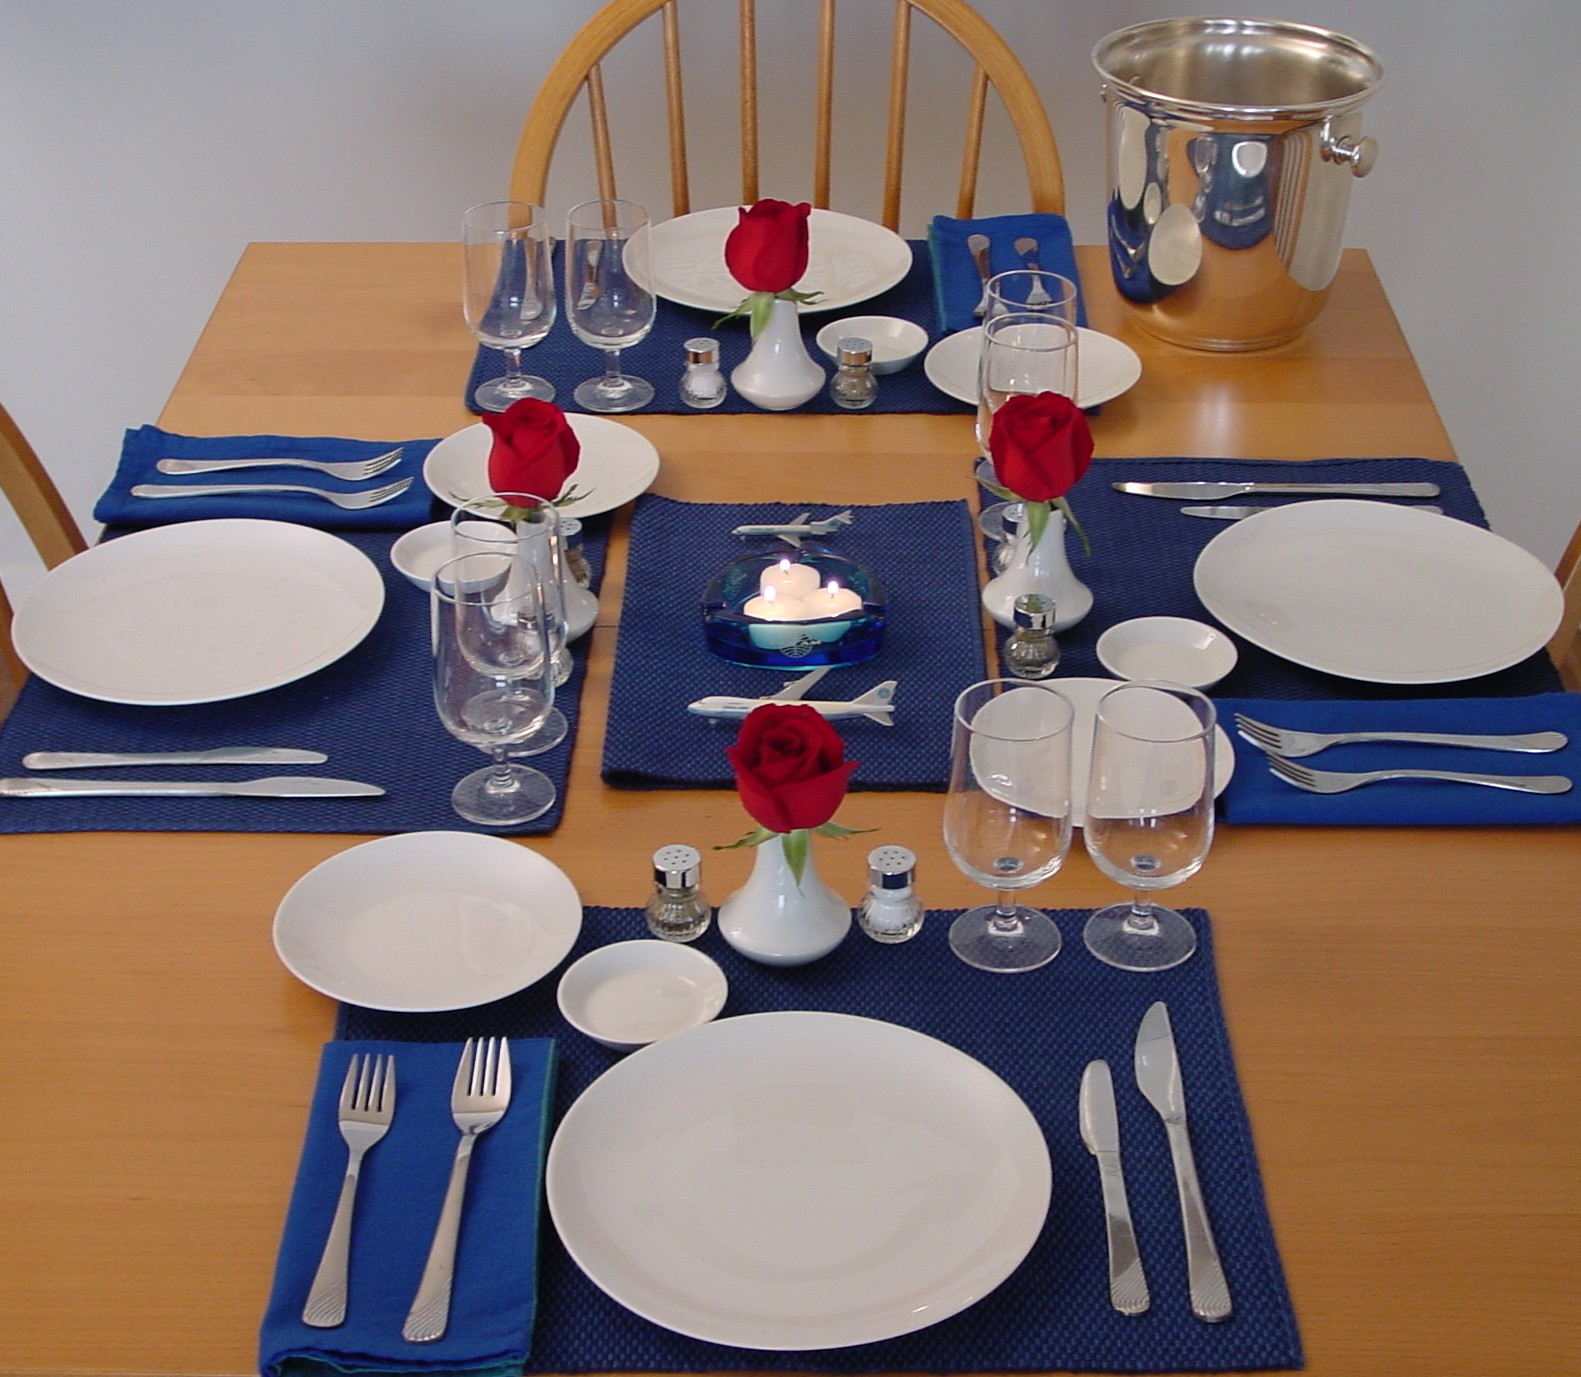 Pan Am's simple white 1980s china pattern produced by Bauscher Weiden of Germany is used for this table setting.